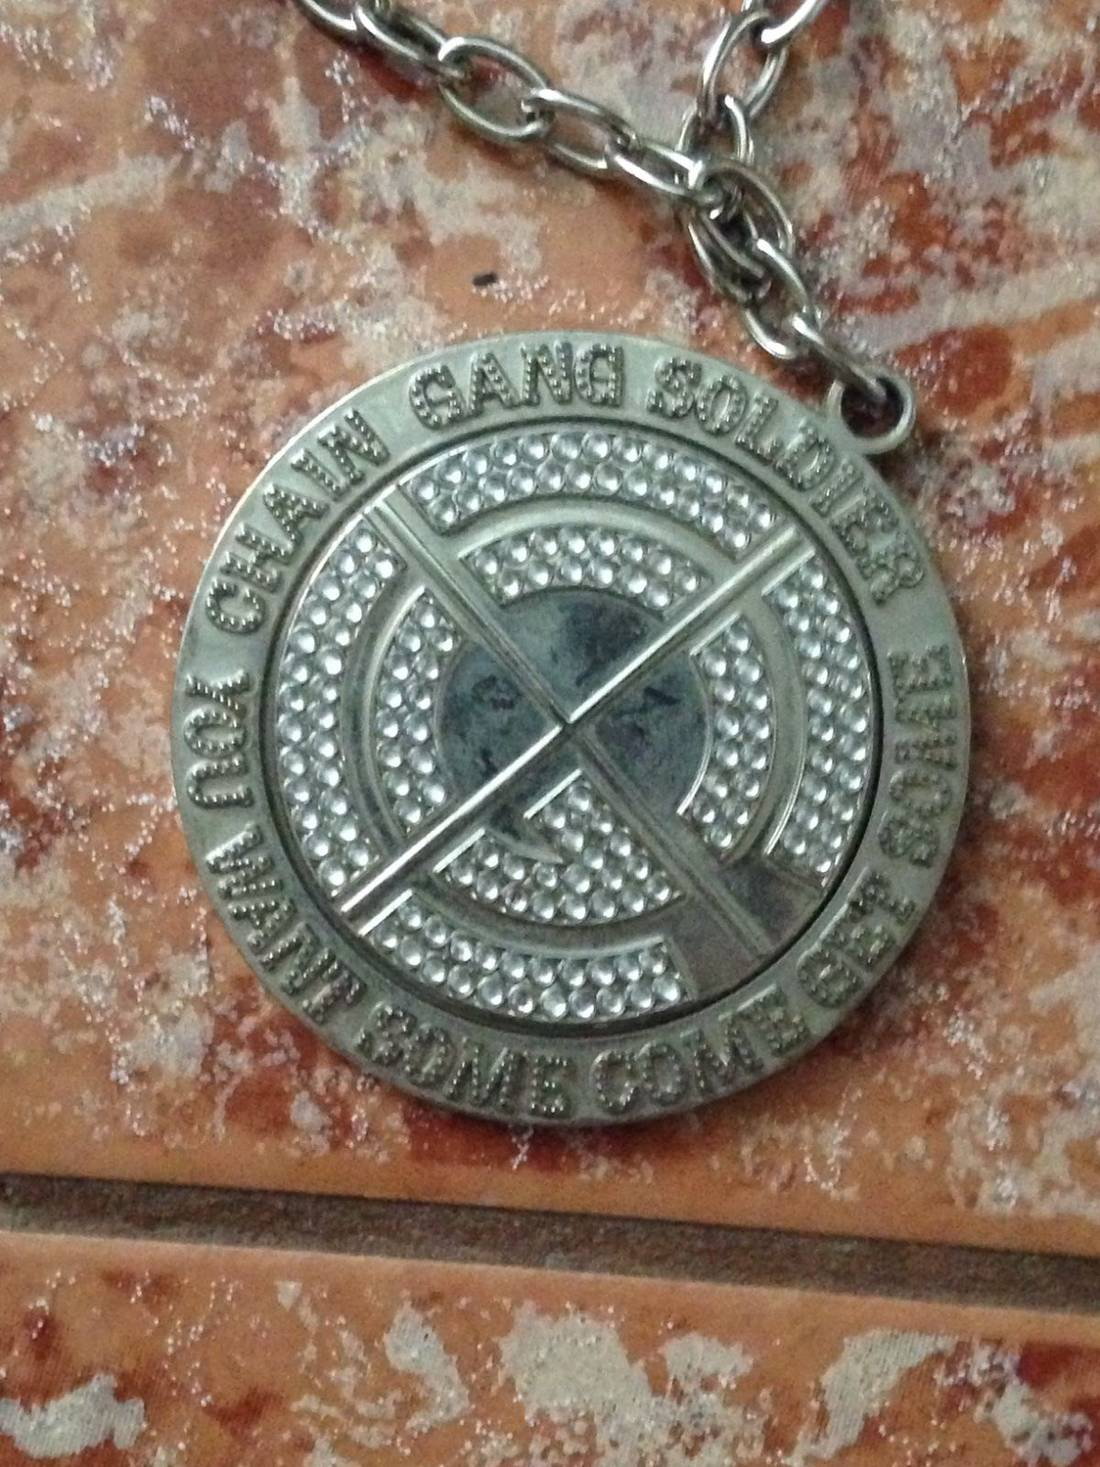 Wwe john cena chain gang spinner necklace size one size jewelry wwe john cena chain gang spinner necklace size one size 2 aloadofball Images